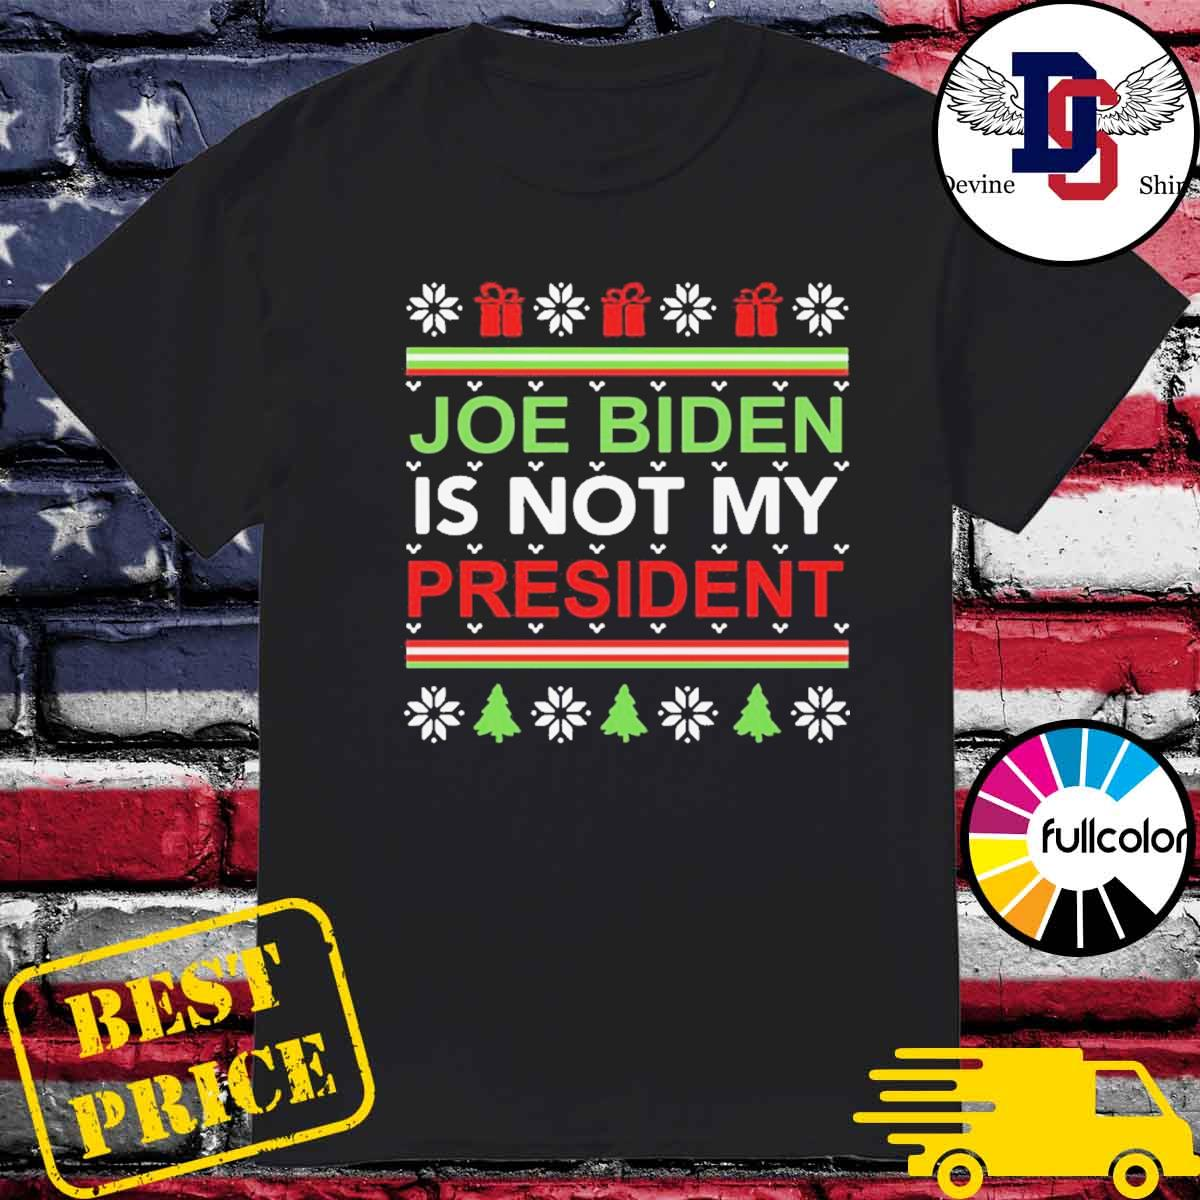 Joe Biden is not my president Christmas ugly shirt